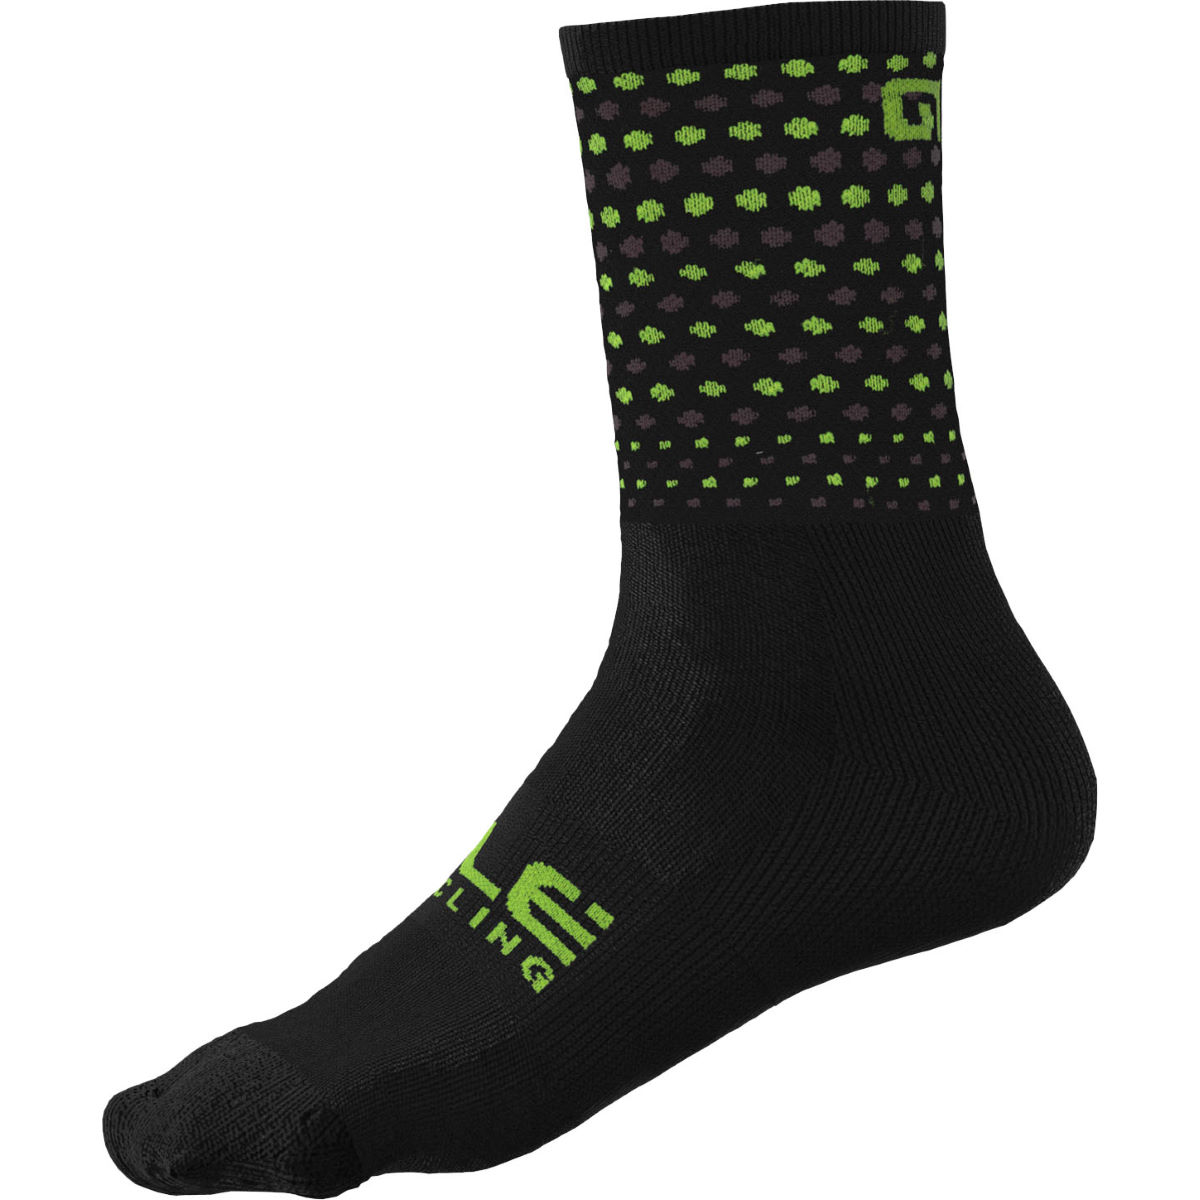 Castelli Pazo 18 Cycling Socks   Socks